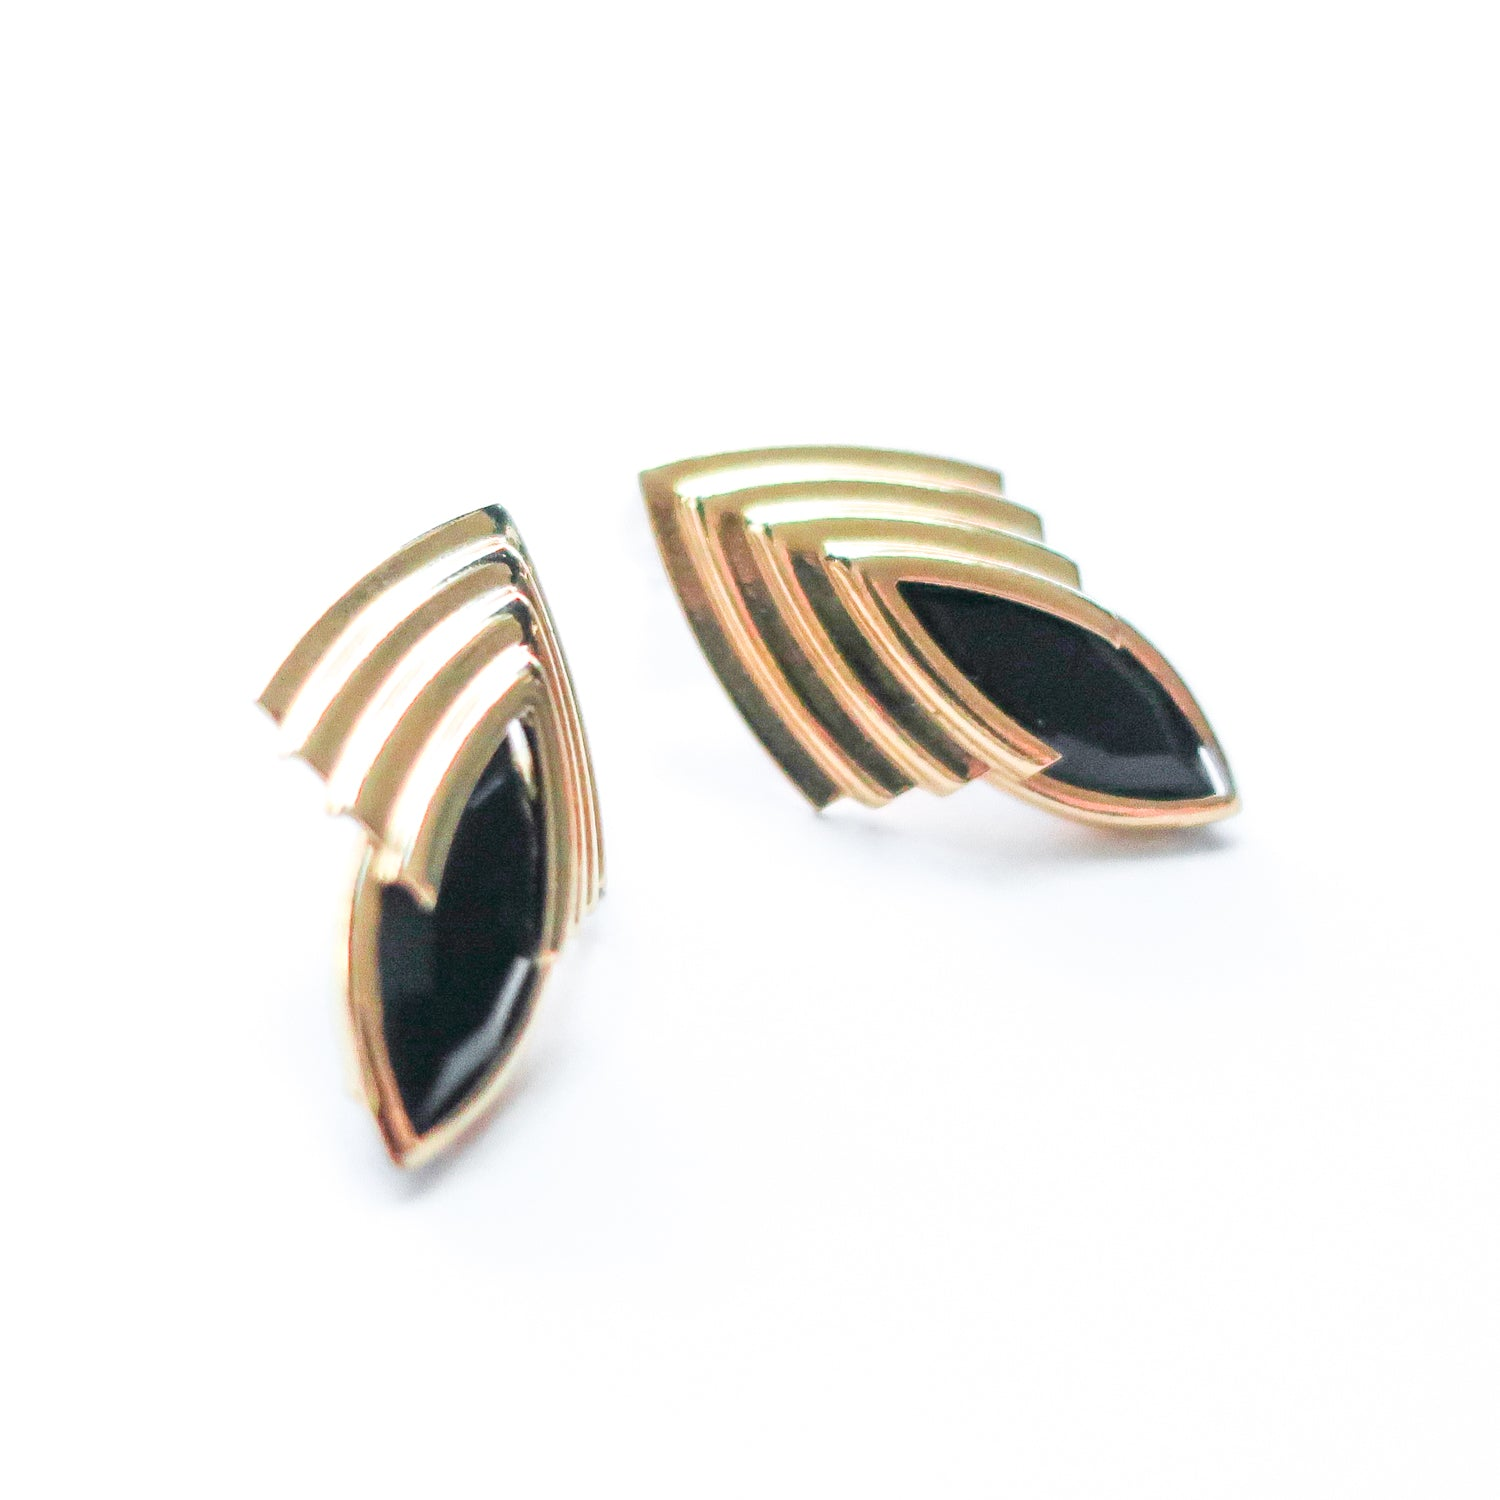 "Second Room Vintage Clothing. Vintage black and gold tone art deco style earrings; 1/2"" wide and 1"" tall. Original earring backs have been replaced with new, clear silicone backings. Free North American shipping on all orders."